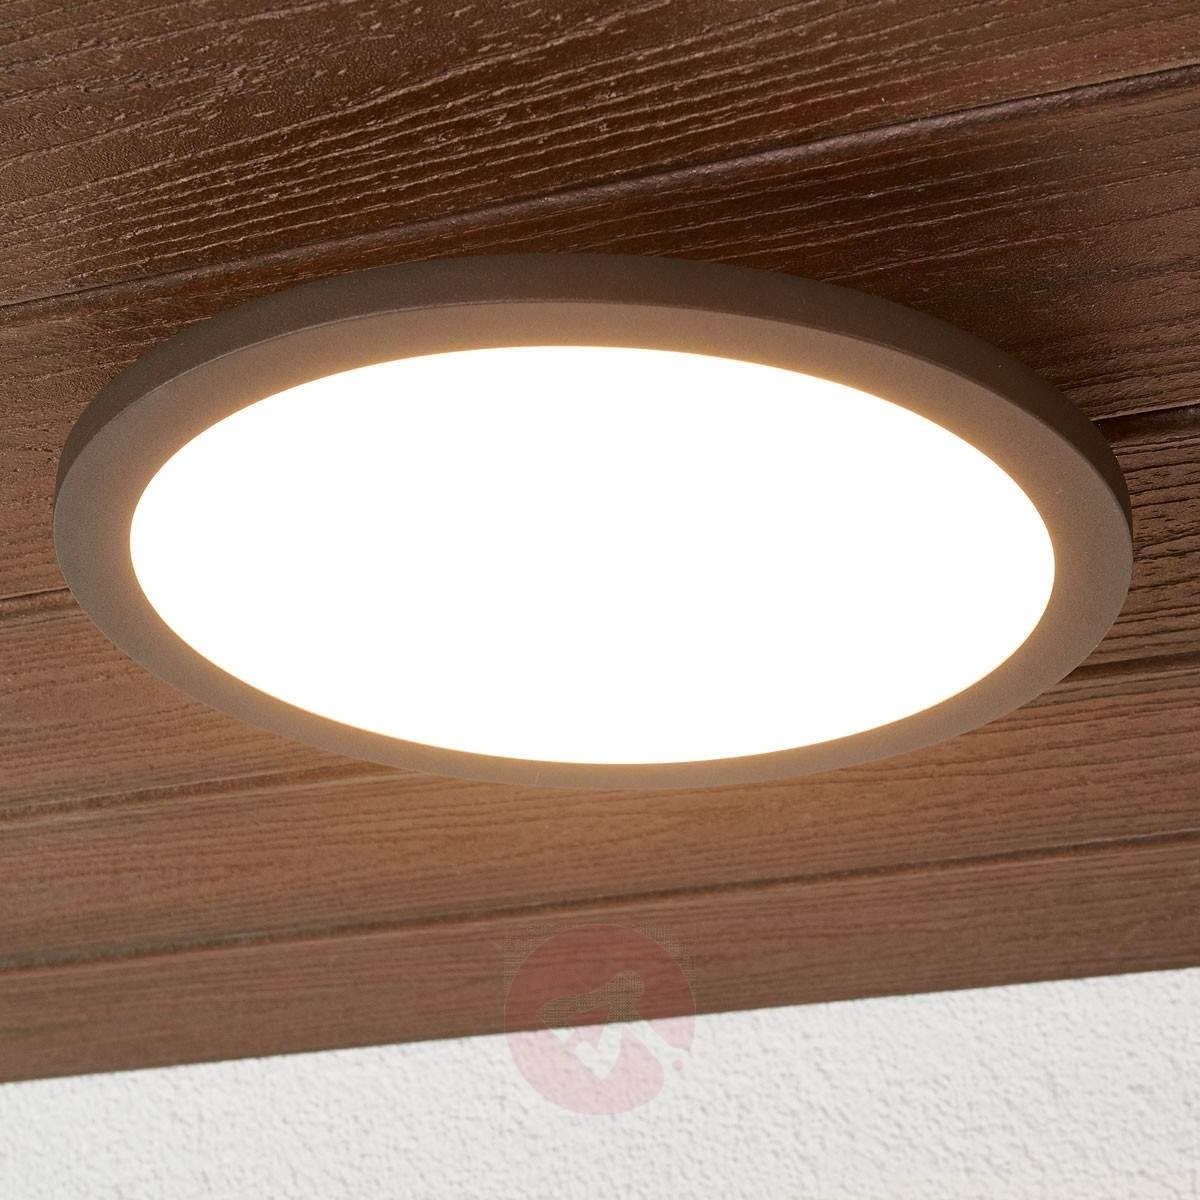 Famous Outdoor Ceiling Sensor Lights Pertaining To Outdoor Ceiling Sensor Light – Outdoor Designs (Gallery 15 of 20)